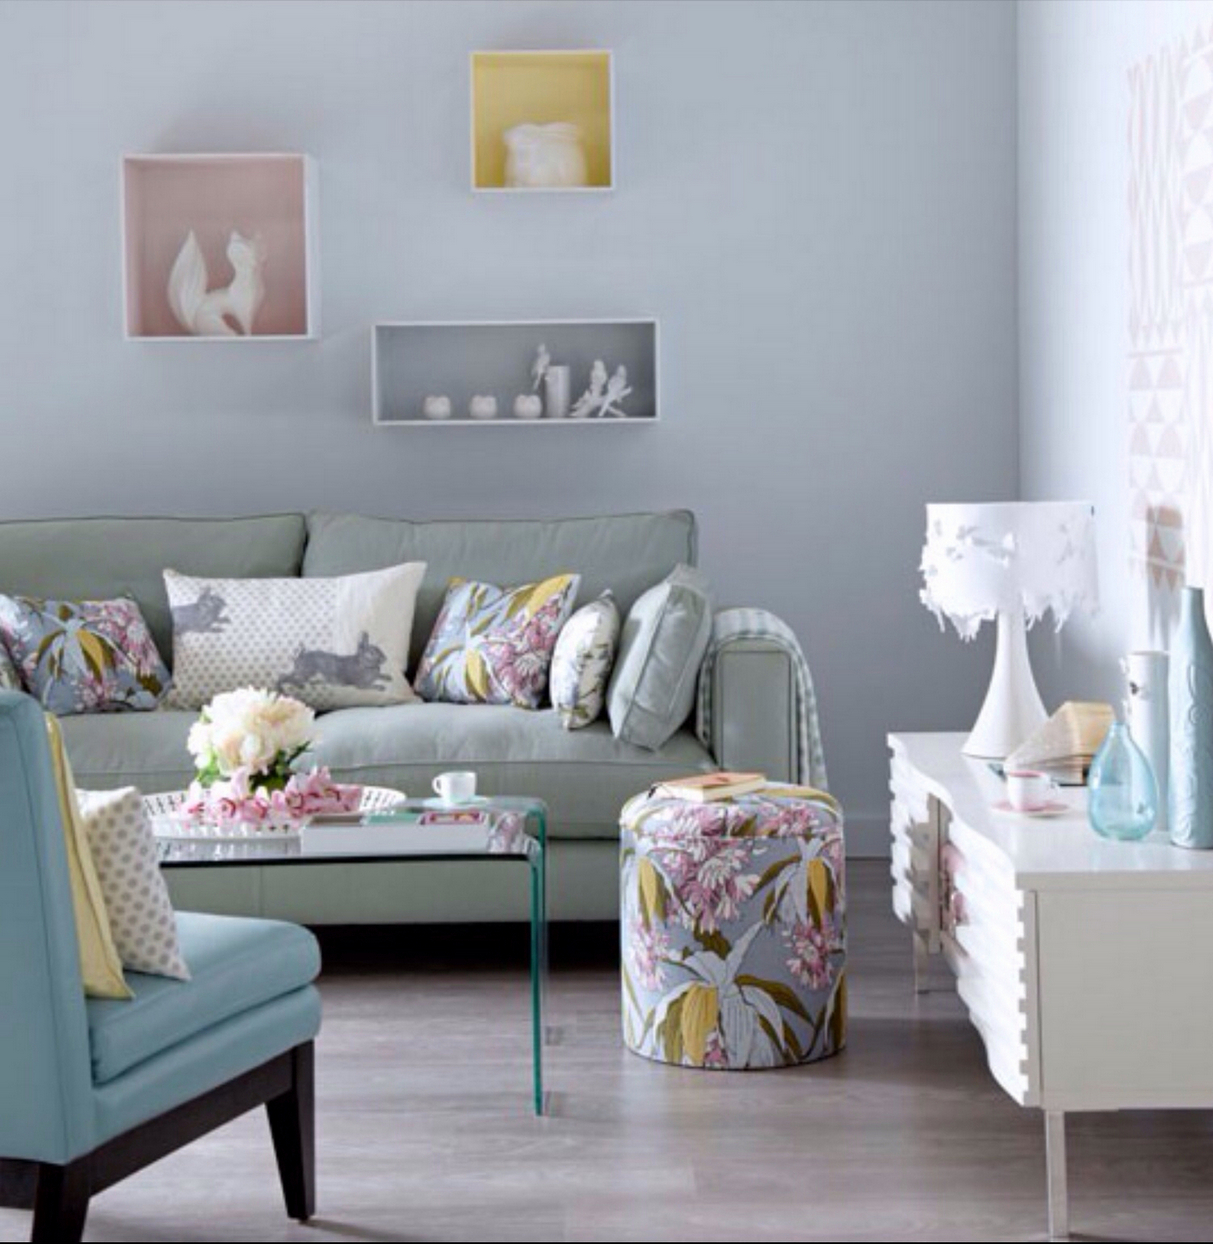 Stylish Living Room Light Blue Walls Living Room Design Ideas With Regard To Blue And Orange Living Room With Floral Pillow Architecturein